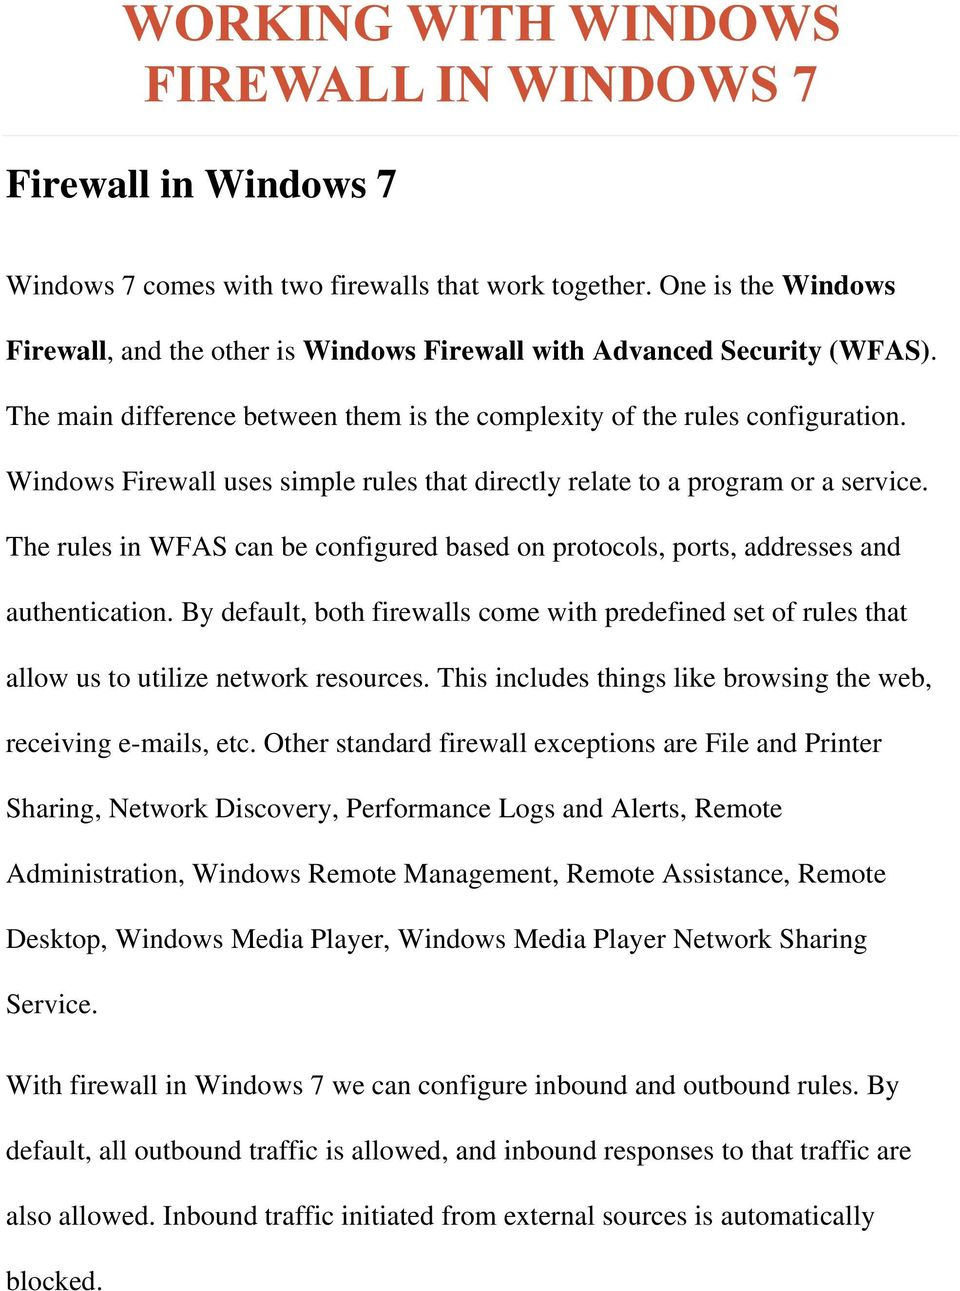 Windows Firewall uses simple rules that directly relate to a program or a service. The rules in WFAS can be configured based on protocols, ports, addresses and authentication.